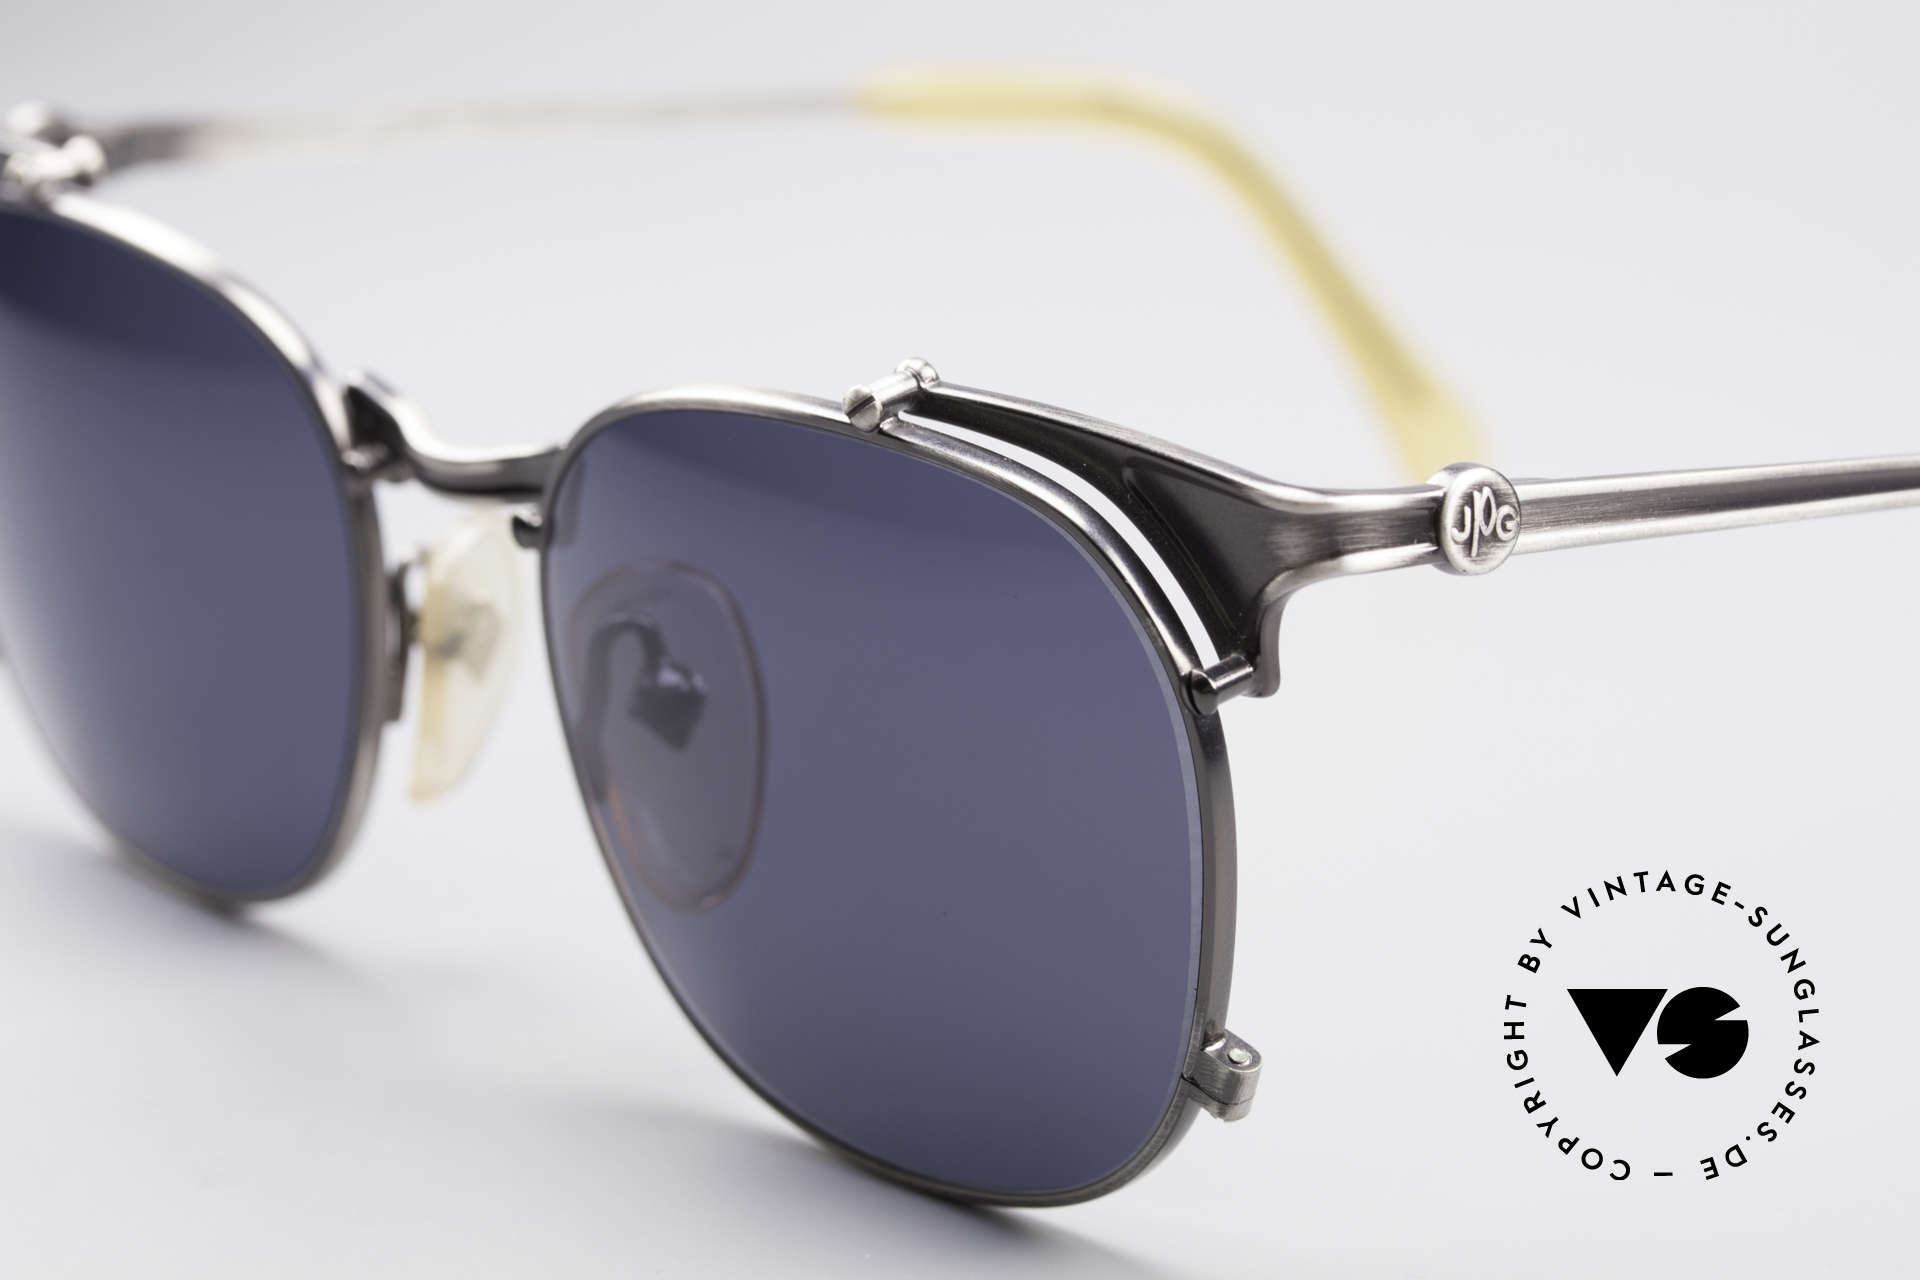 2229c6f61d Jean-paul Gaultier Sunglasses Related Keywords   Suggestions - Jean ...